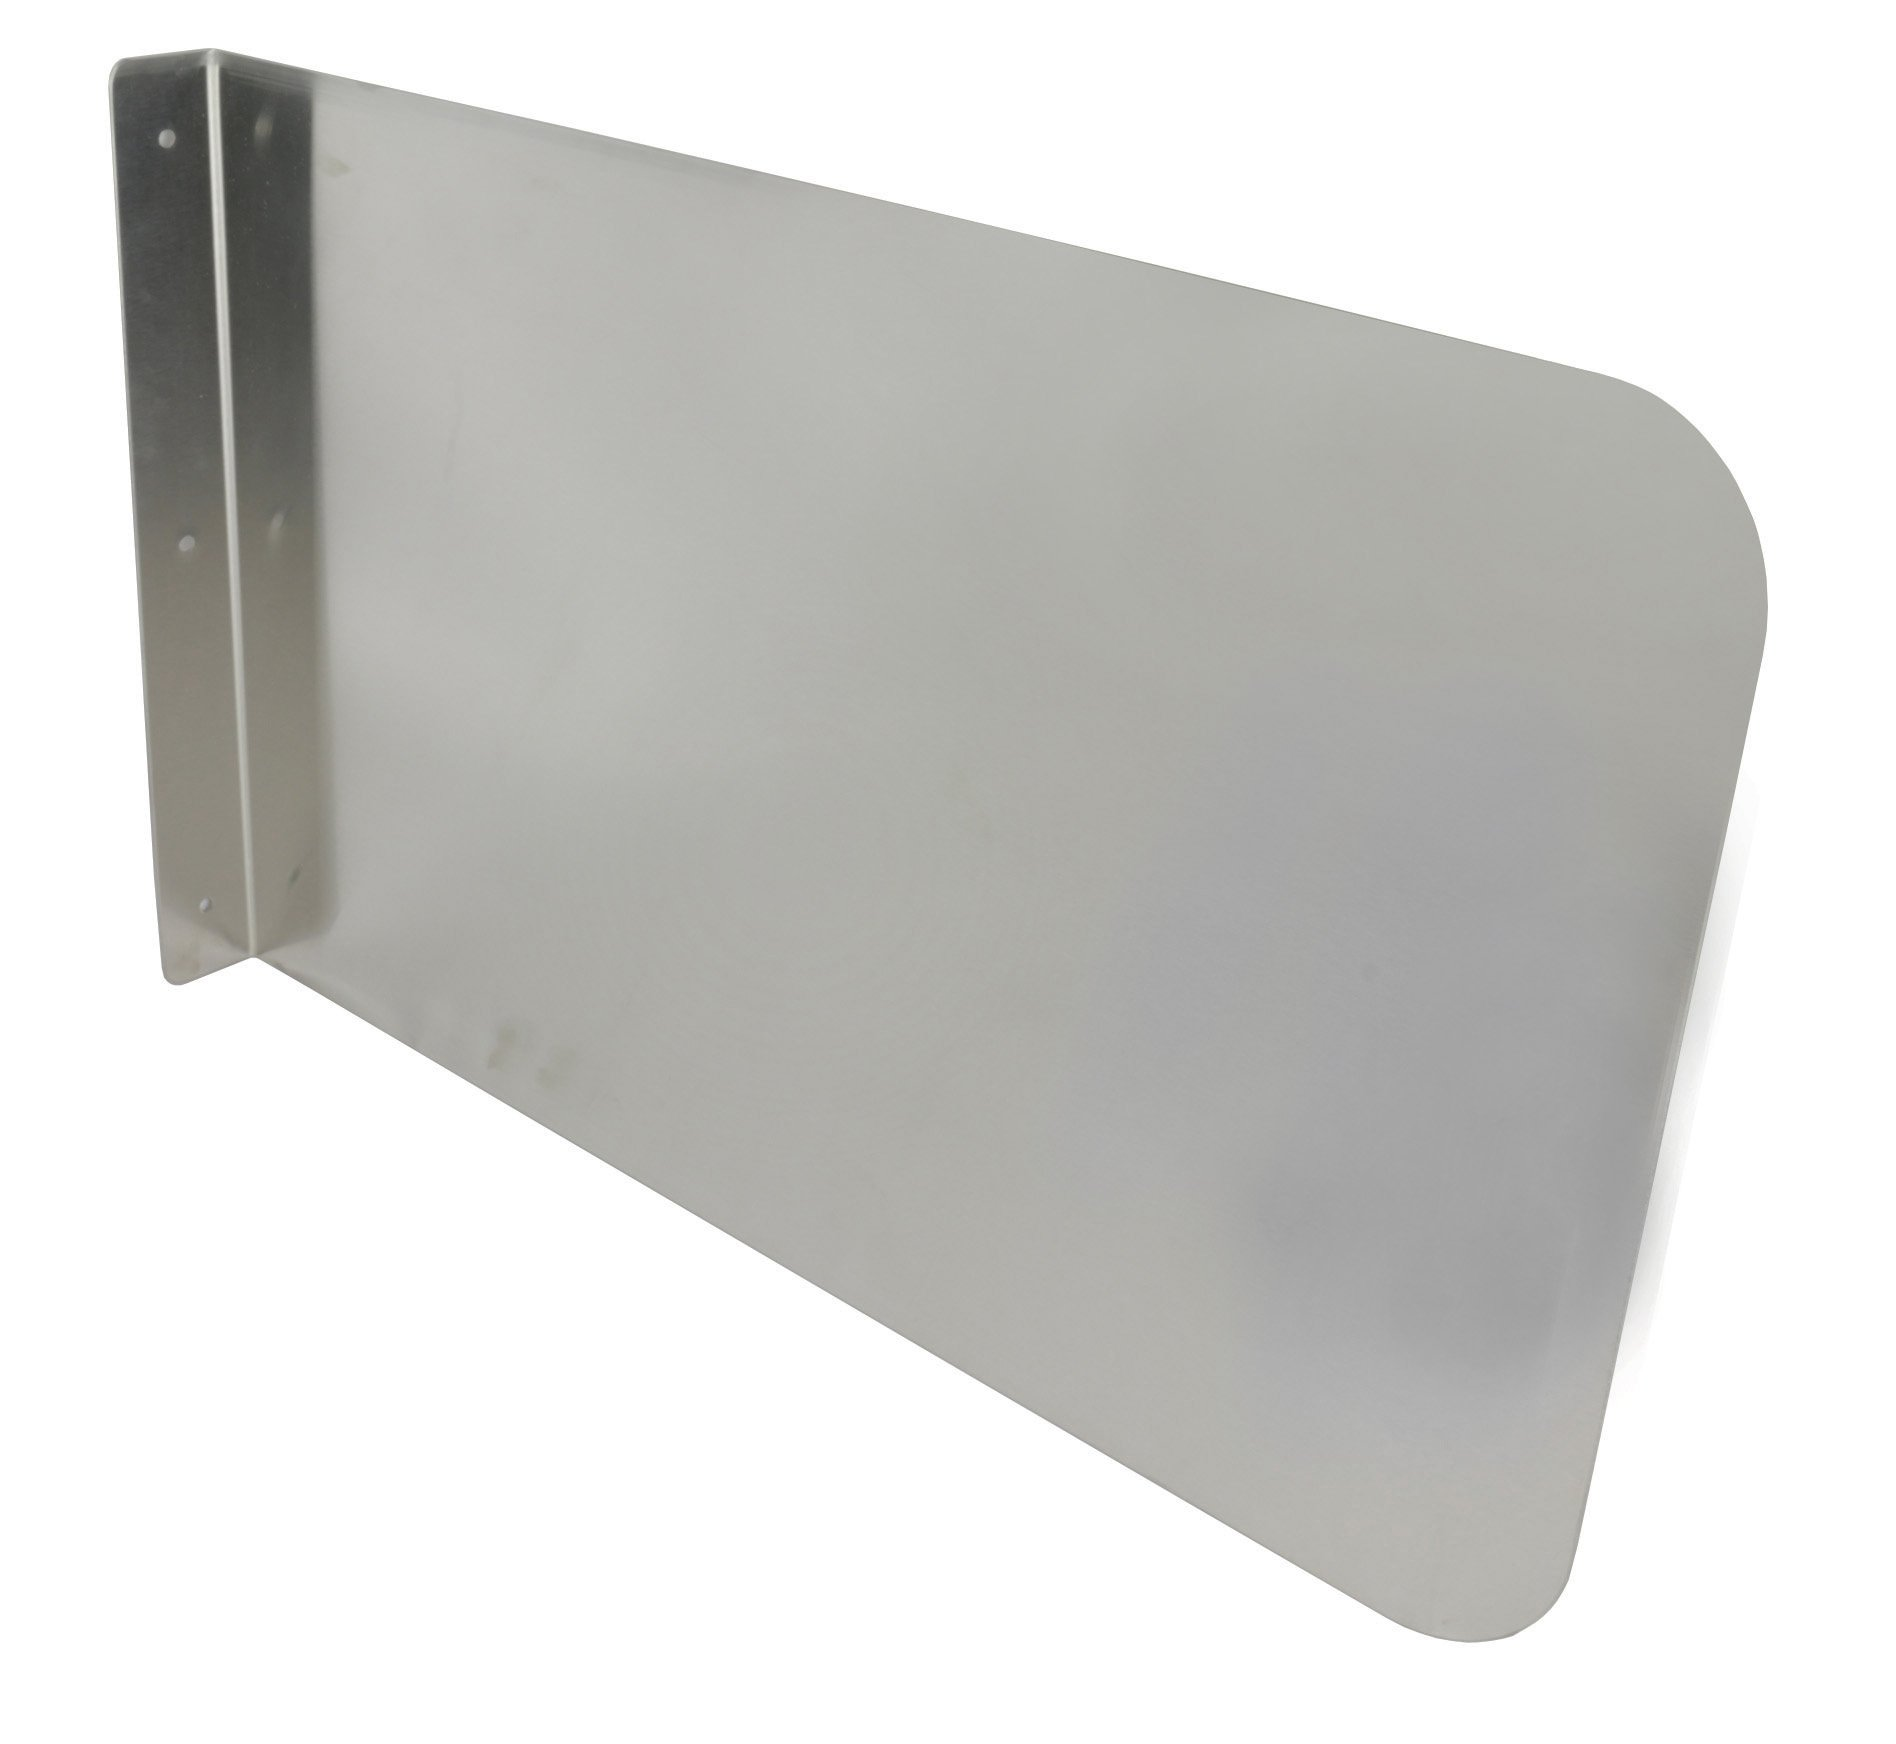 Stainless Steel Wall Mount Splash Guard for Commercial Restaurant Hand Sink and Compartment Prep Sink, NSF Certified (26''W x 20''H)